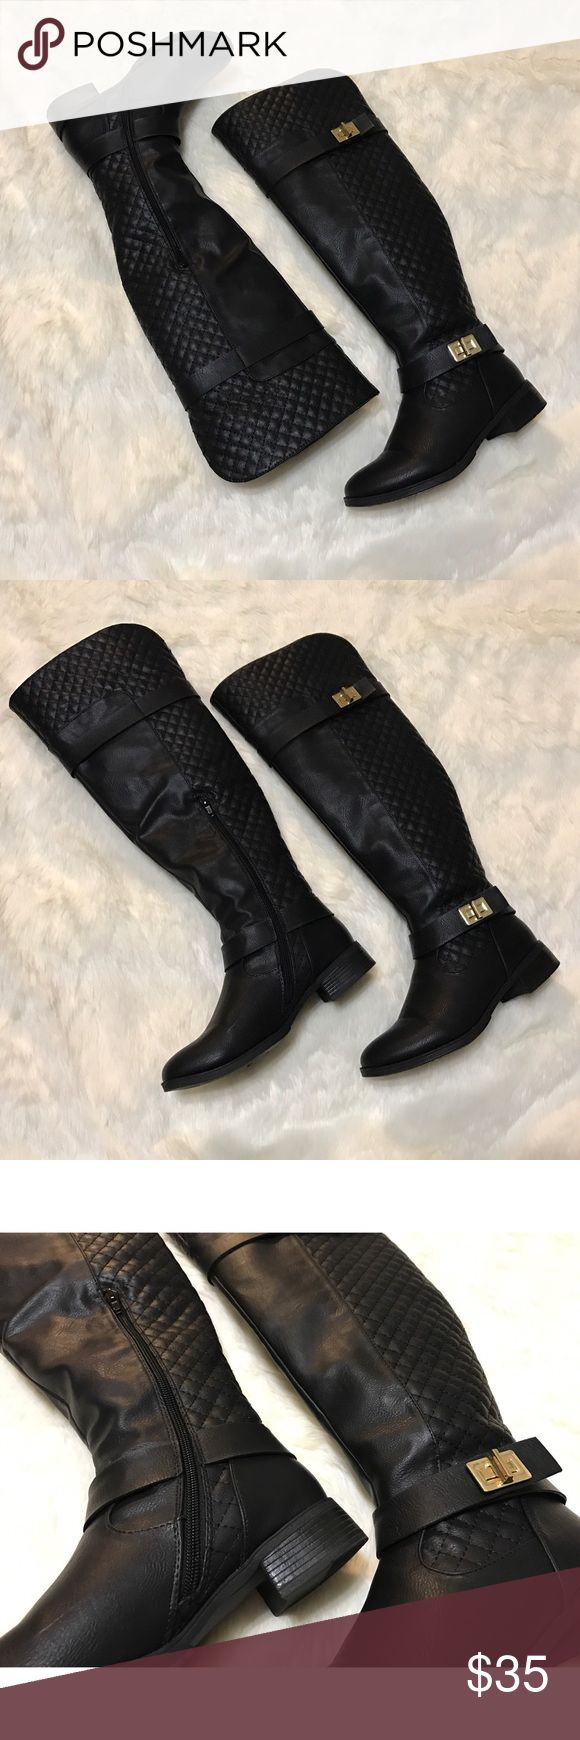 🎉Host Pick🎉⭐️ Tieana Boots ⭐️ Black quilted faux leather tall boots. Only worn a couple of times. Fairly new. In excellent condition.  PRICE IS FIRM unless bundled.  NO Trades. NO Models. Shoe Dazzle Shoes Over the Knee Boots